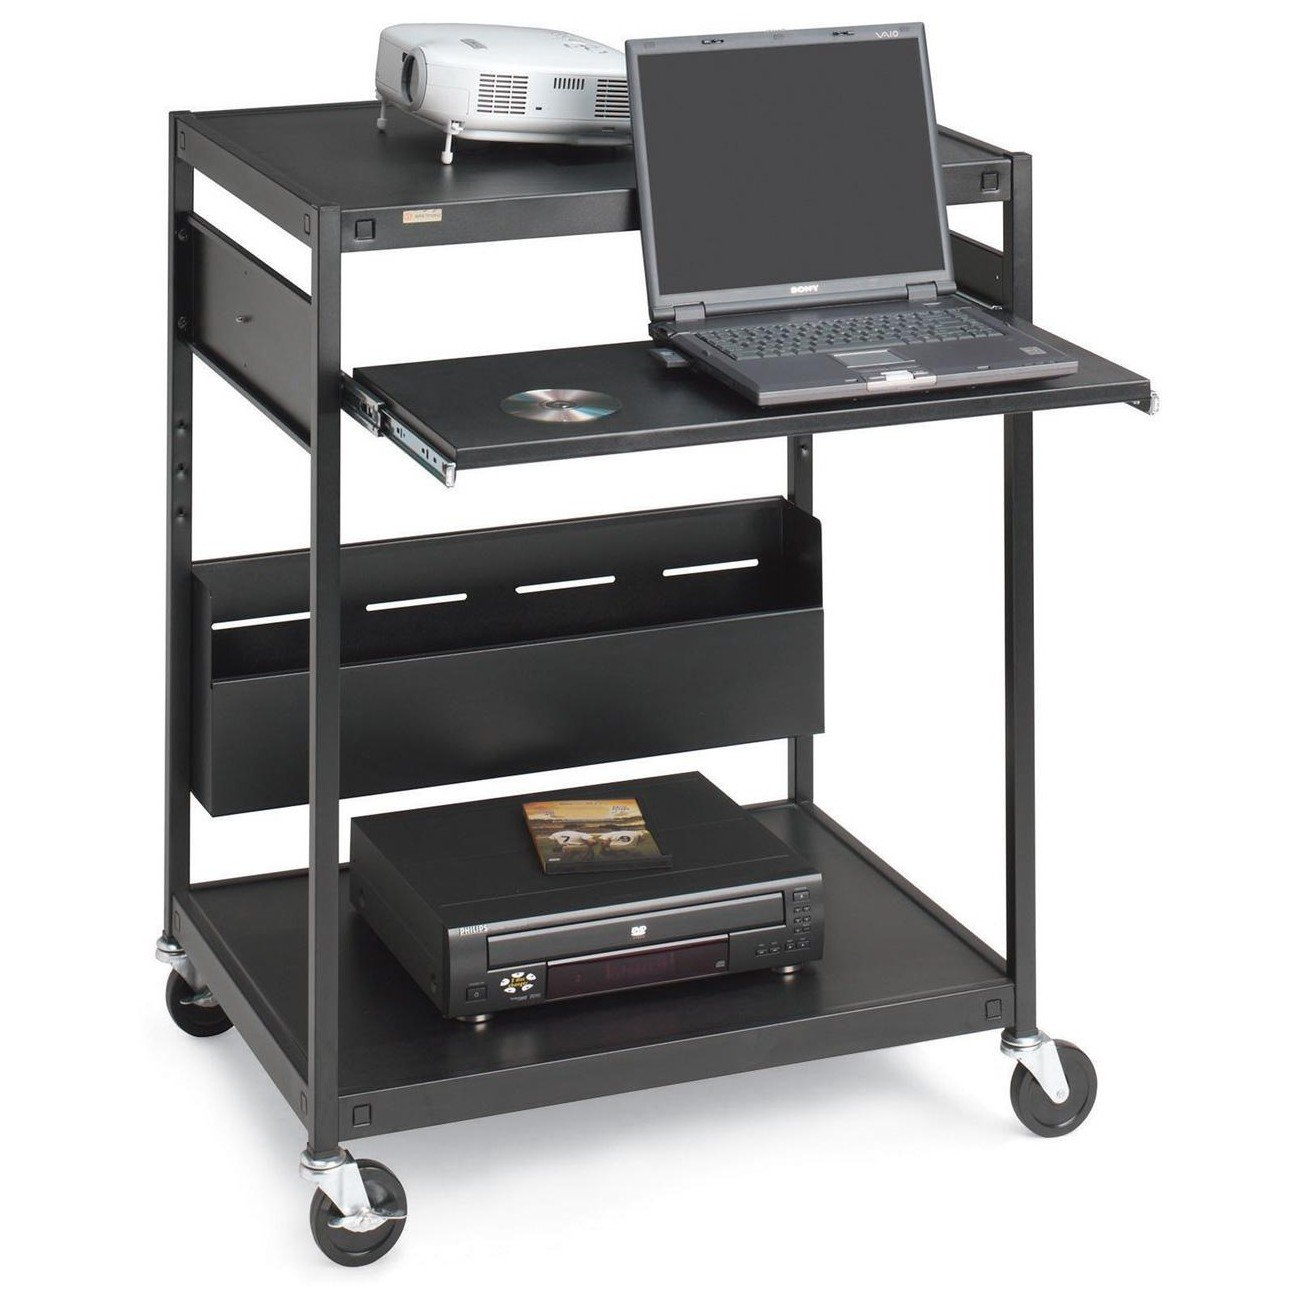 Bretford Interactive Learning Center ECILS1FF-BK - Cart for projector ( rack ) - steel - black - screen size: up to 25